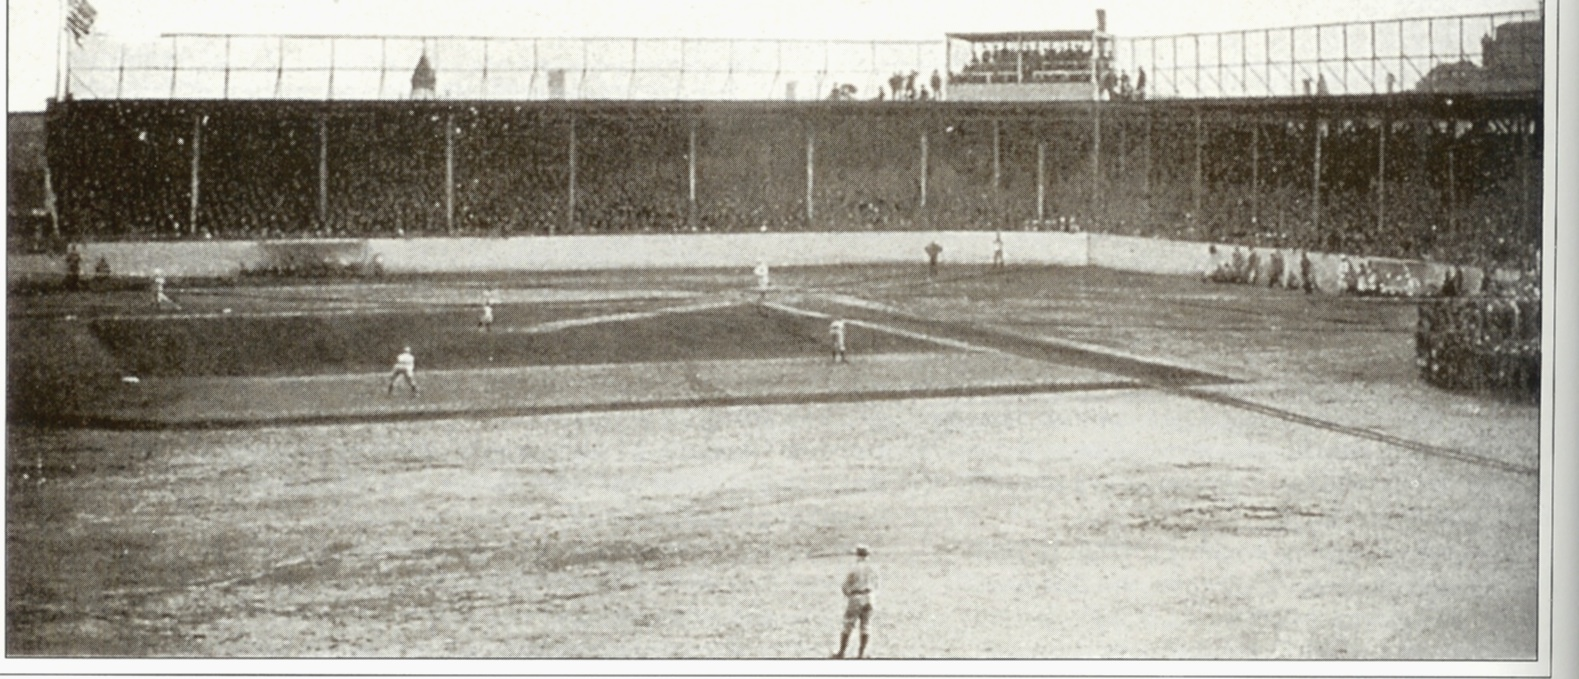 Columbia Park, former home of the Philadelphia Athletics